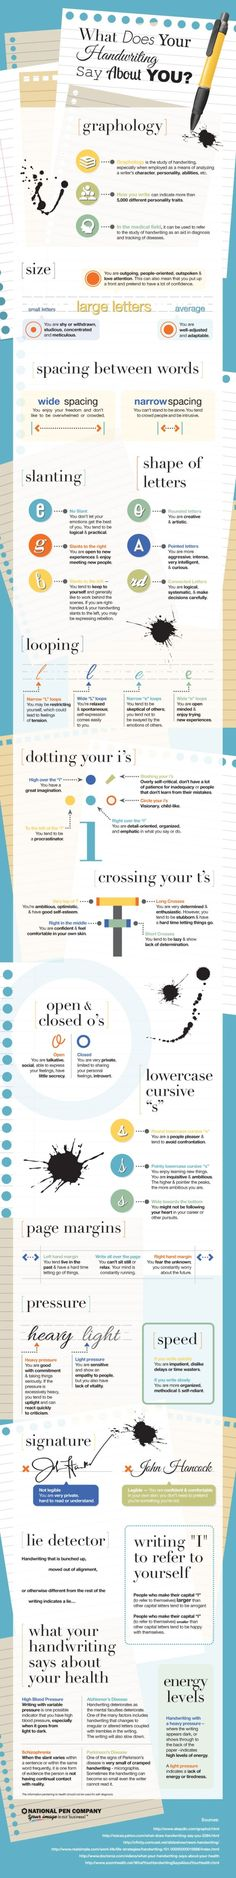 Great infographic on what your handwriting says about you!